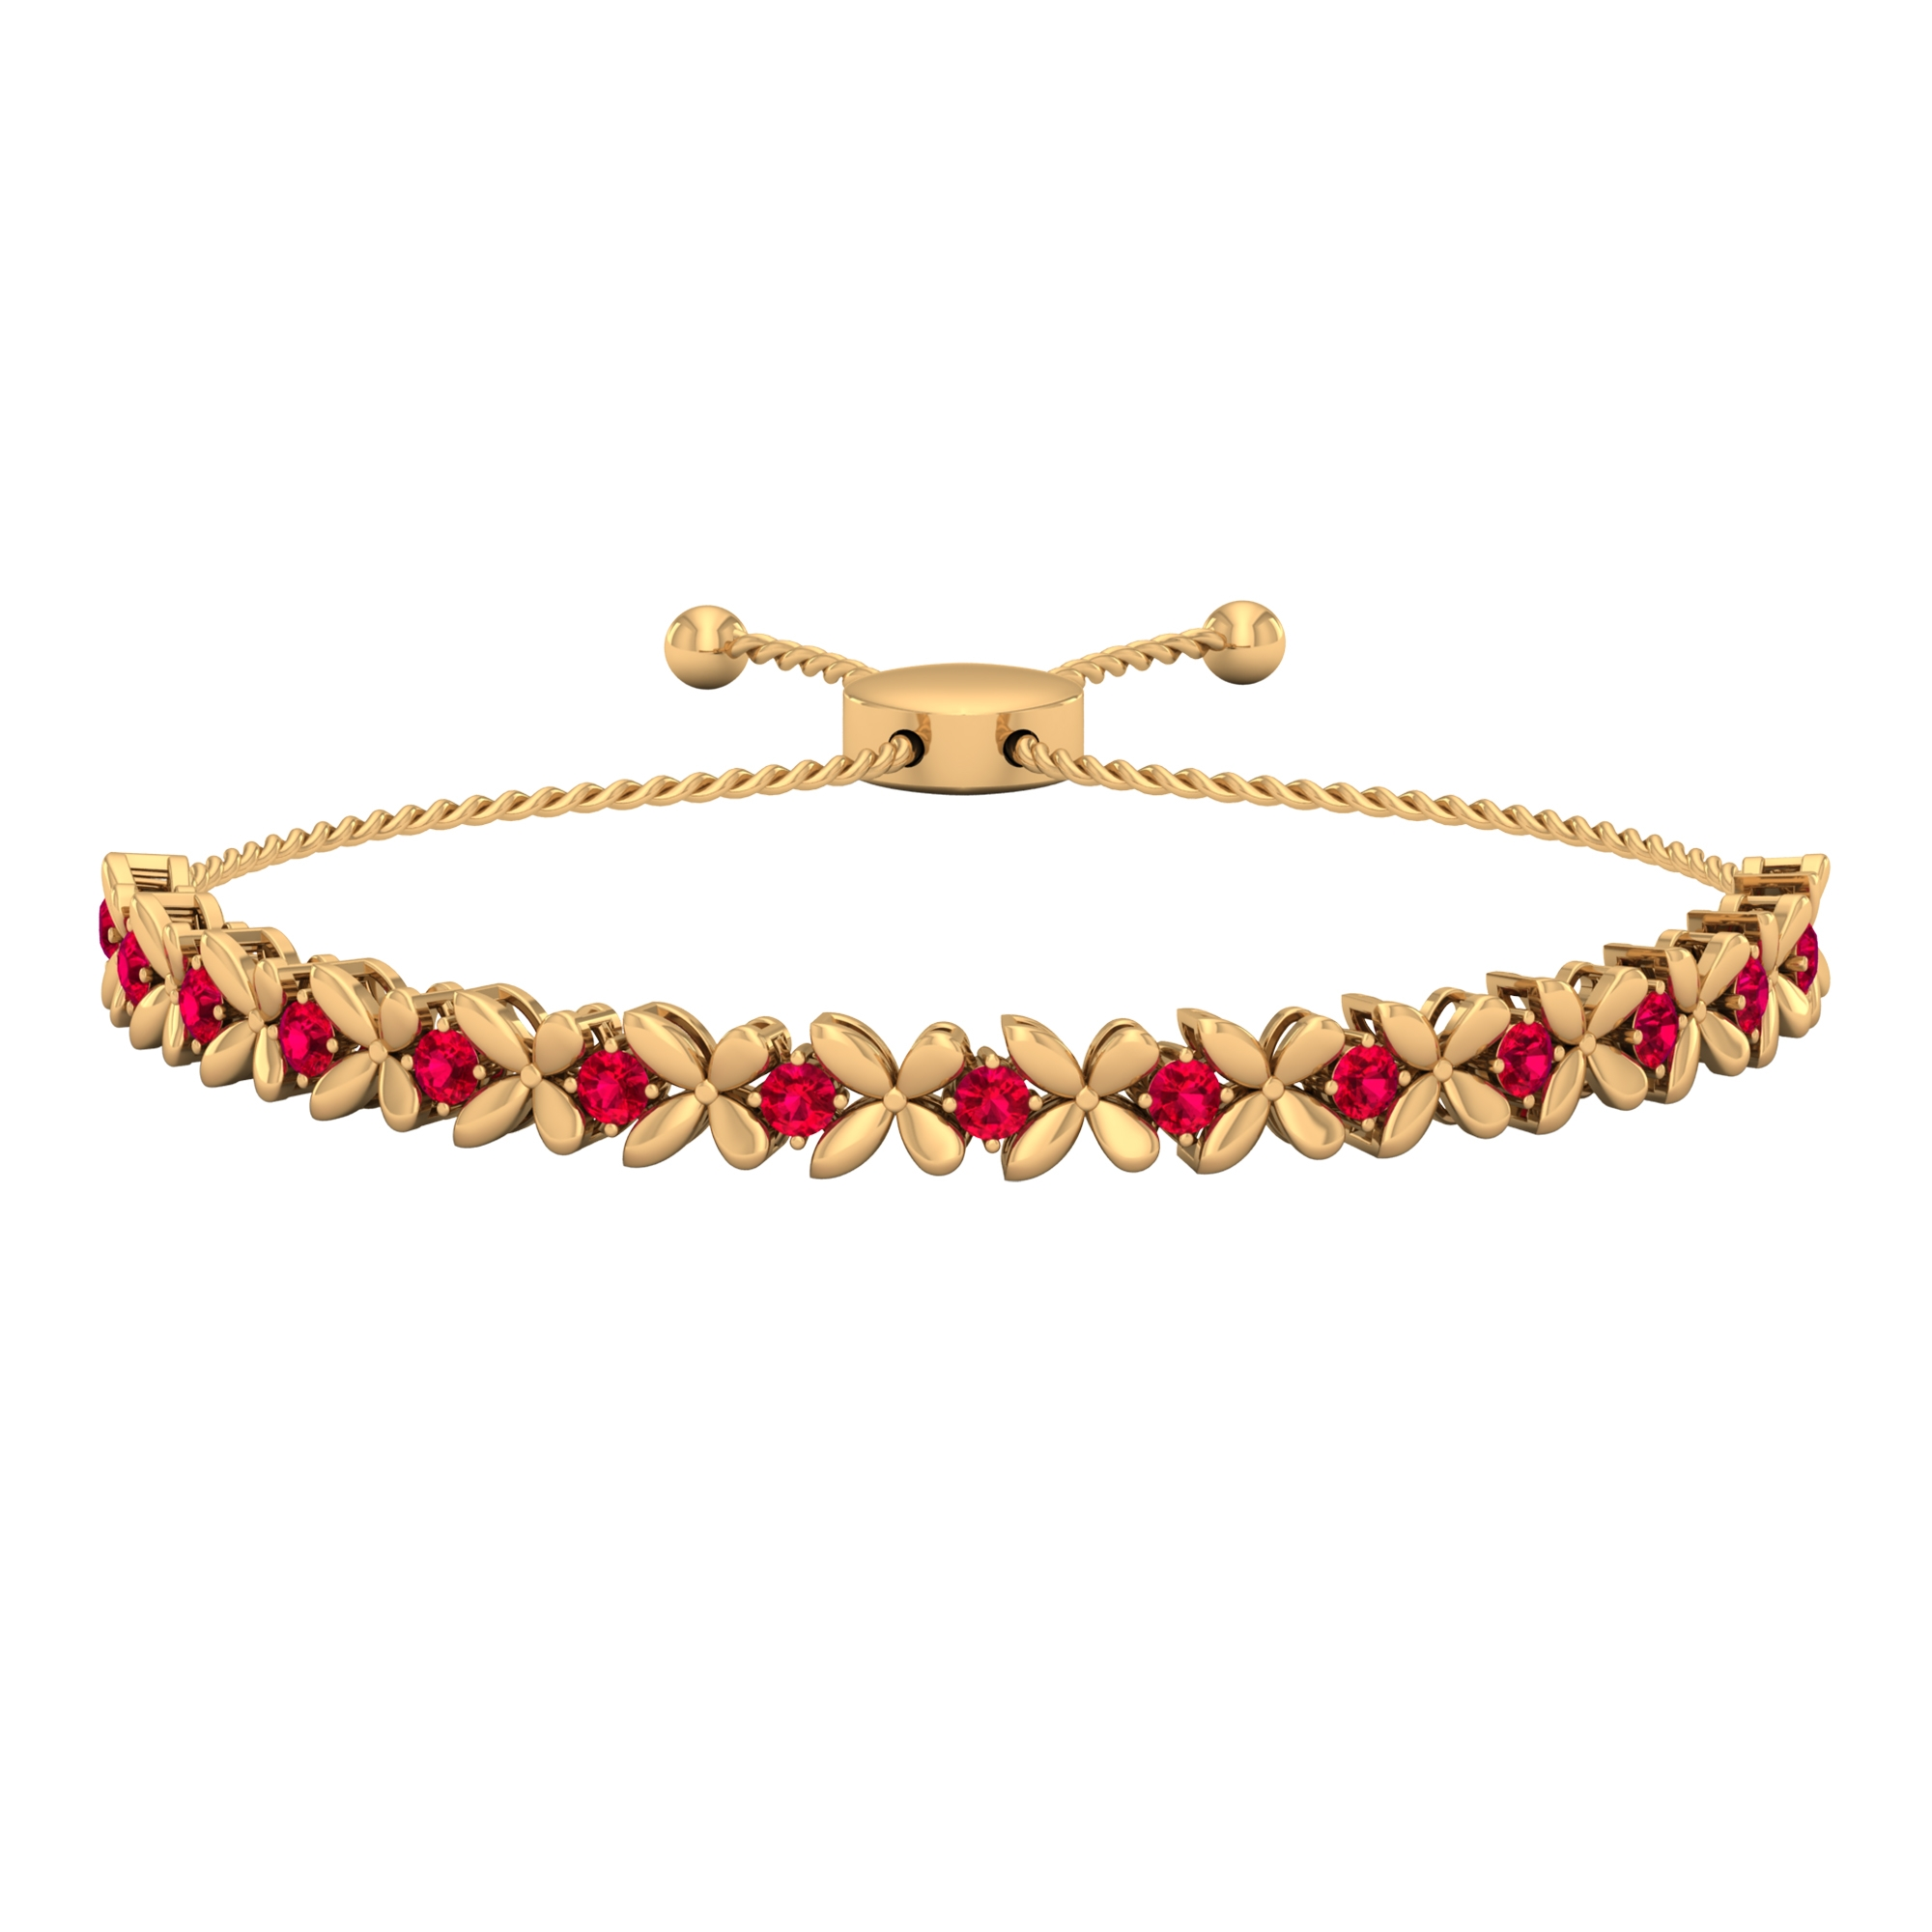 1.25 CT Ruby Floral Tennis Bolo Bracelet with Gold Rope Chain